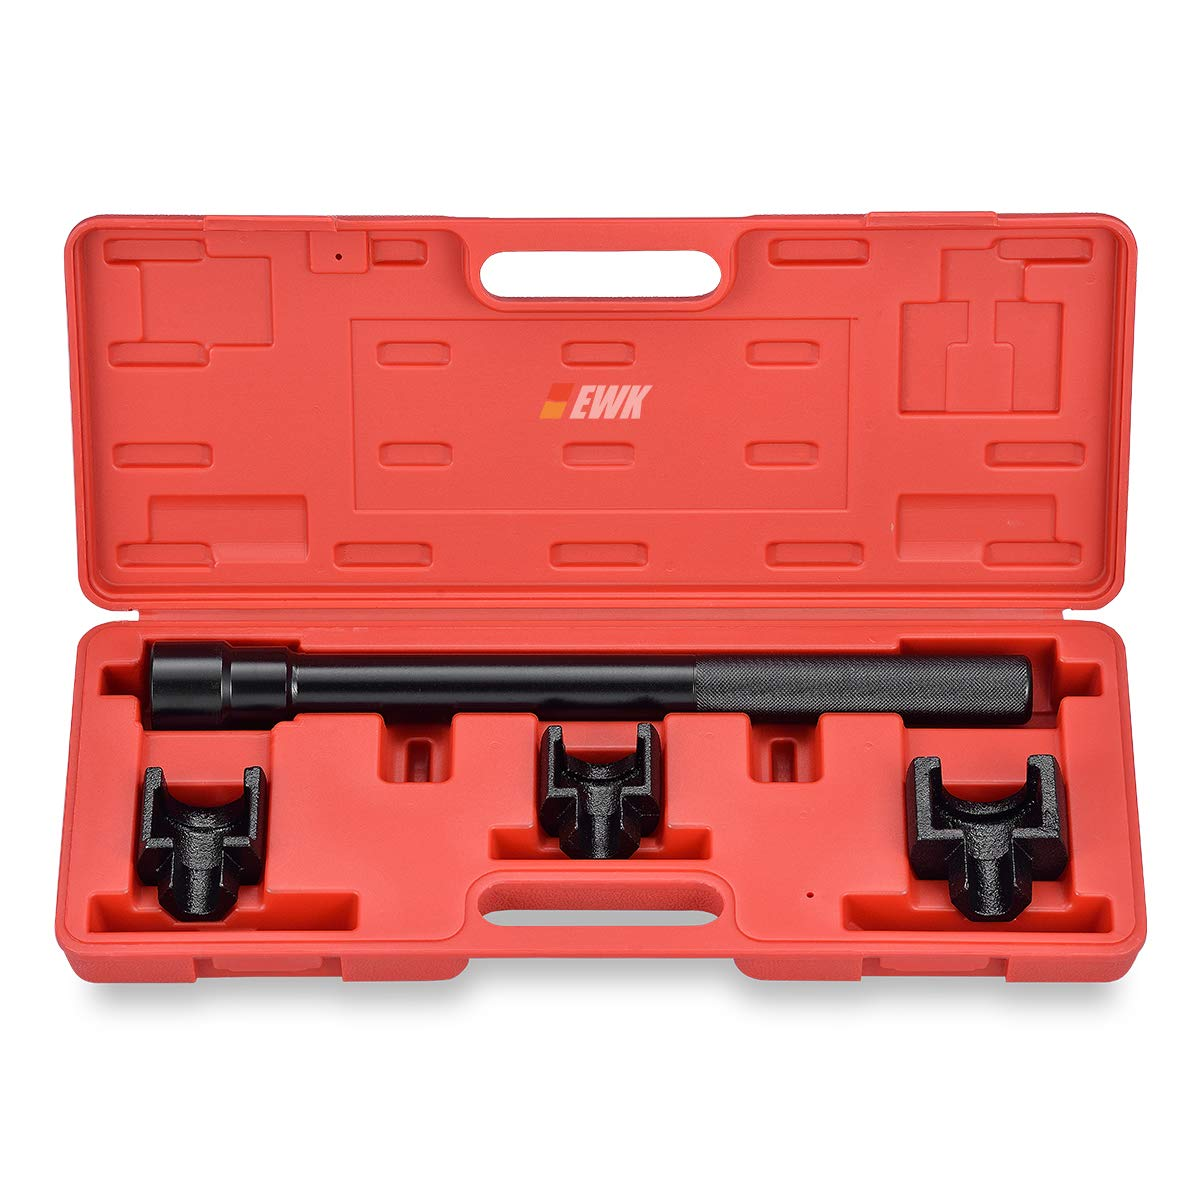 EWK Dual Inner Tie Rod Tool Removal Set with 3 Adapters 1-3/16'' 1-5/16'' 1-7/16'' for Ford Chrysler GM by EWK (Image #1)